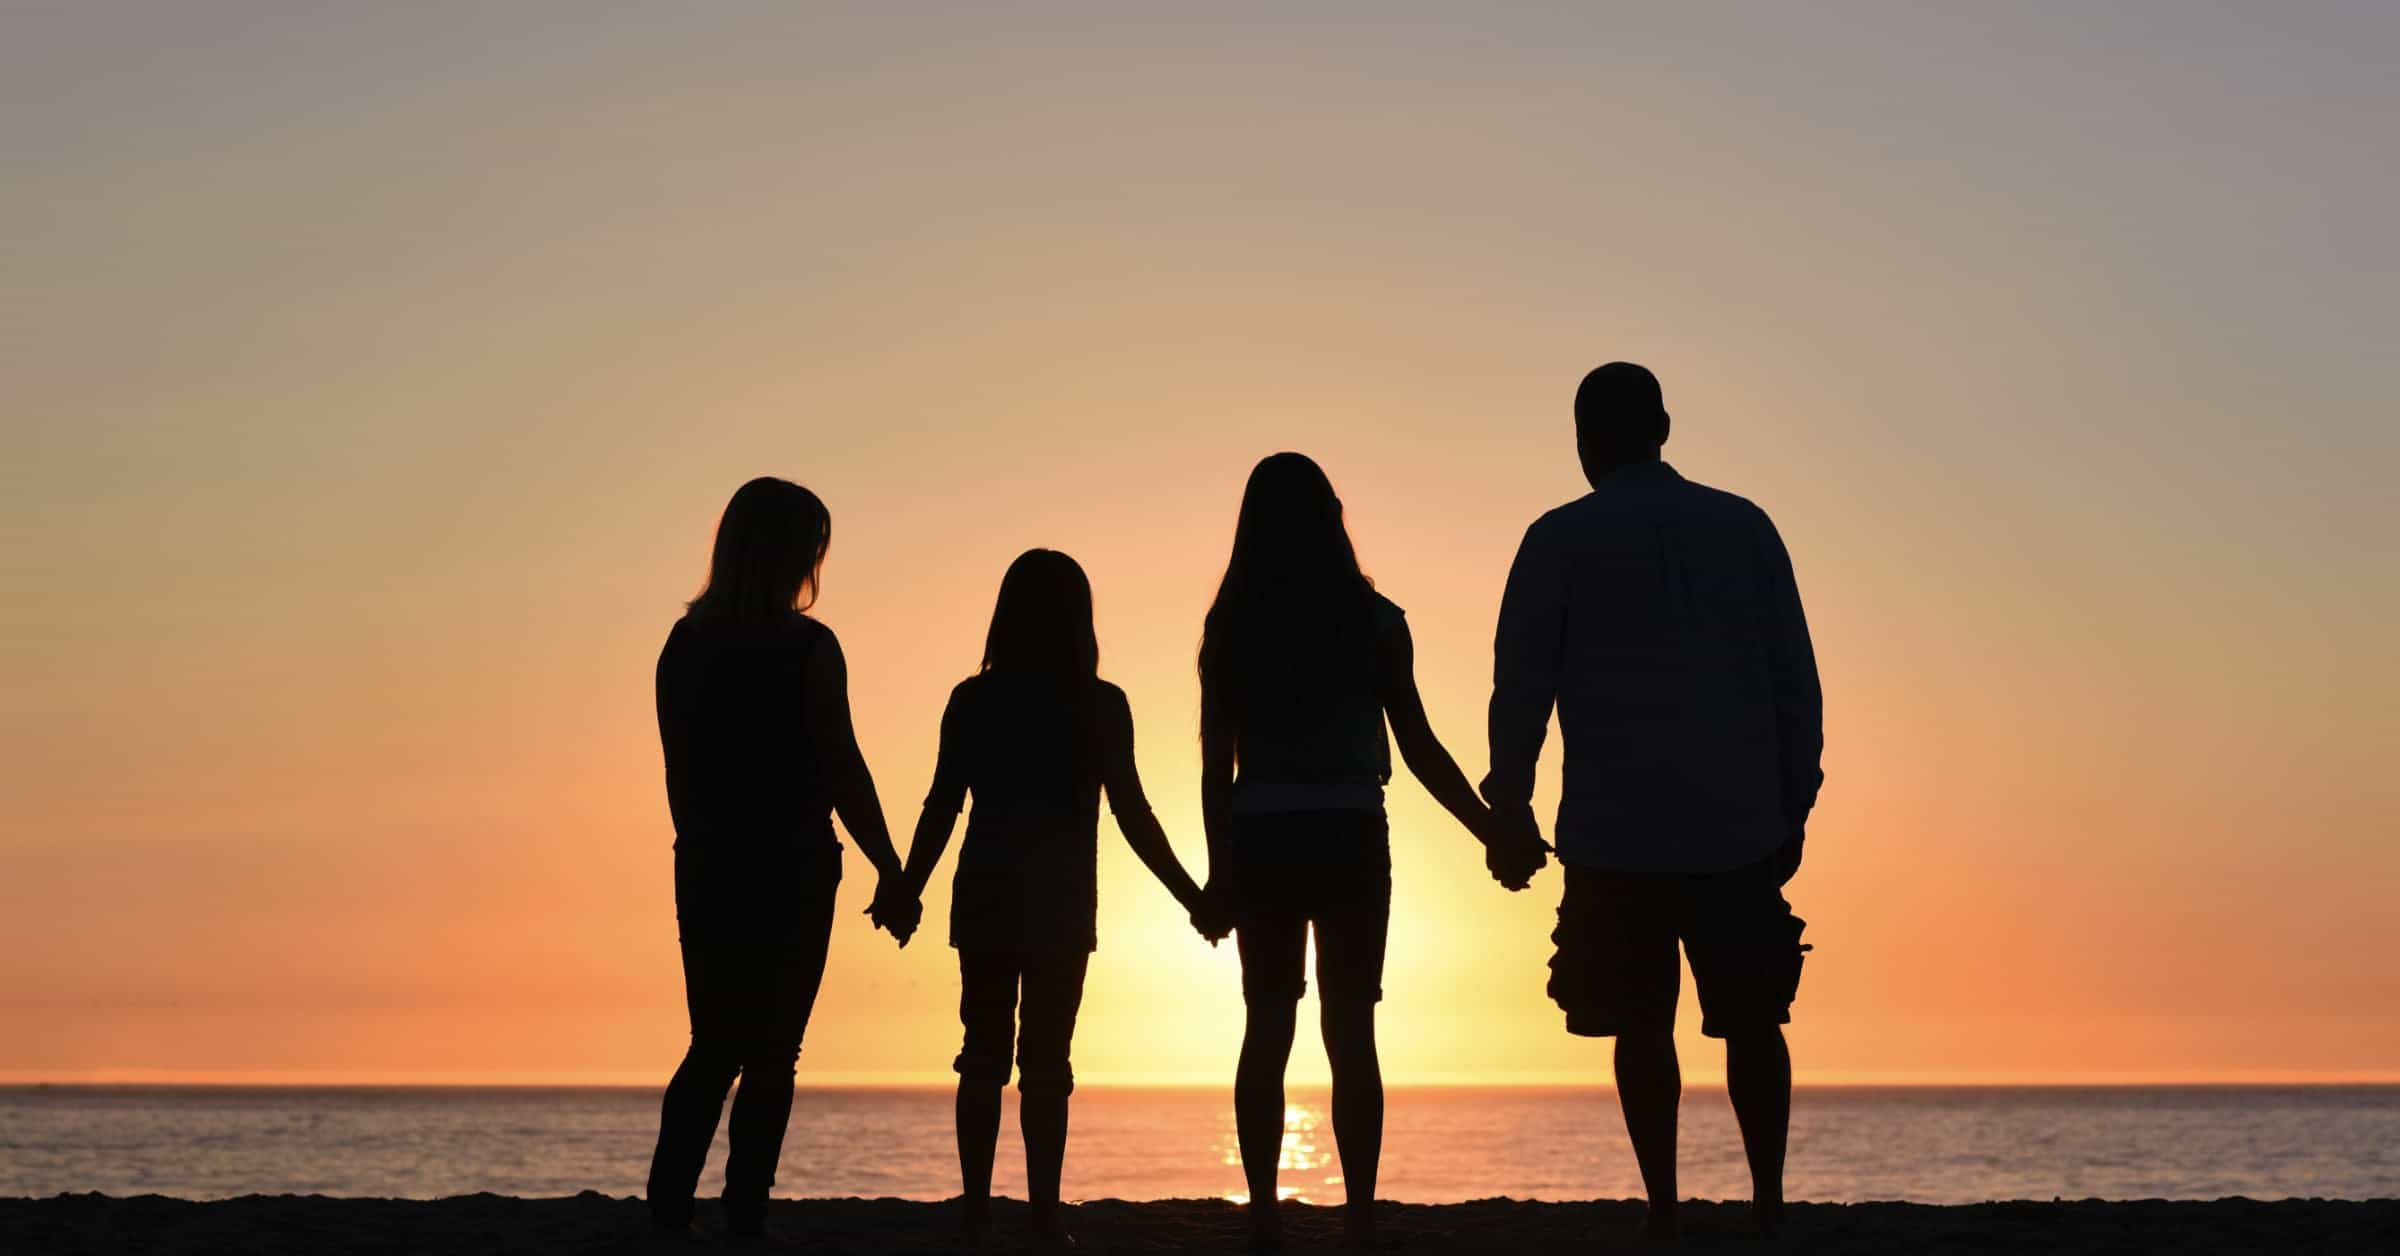 The Millennial Perspective: A Family to Call Their Own